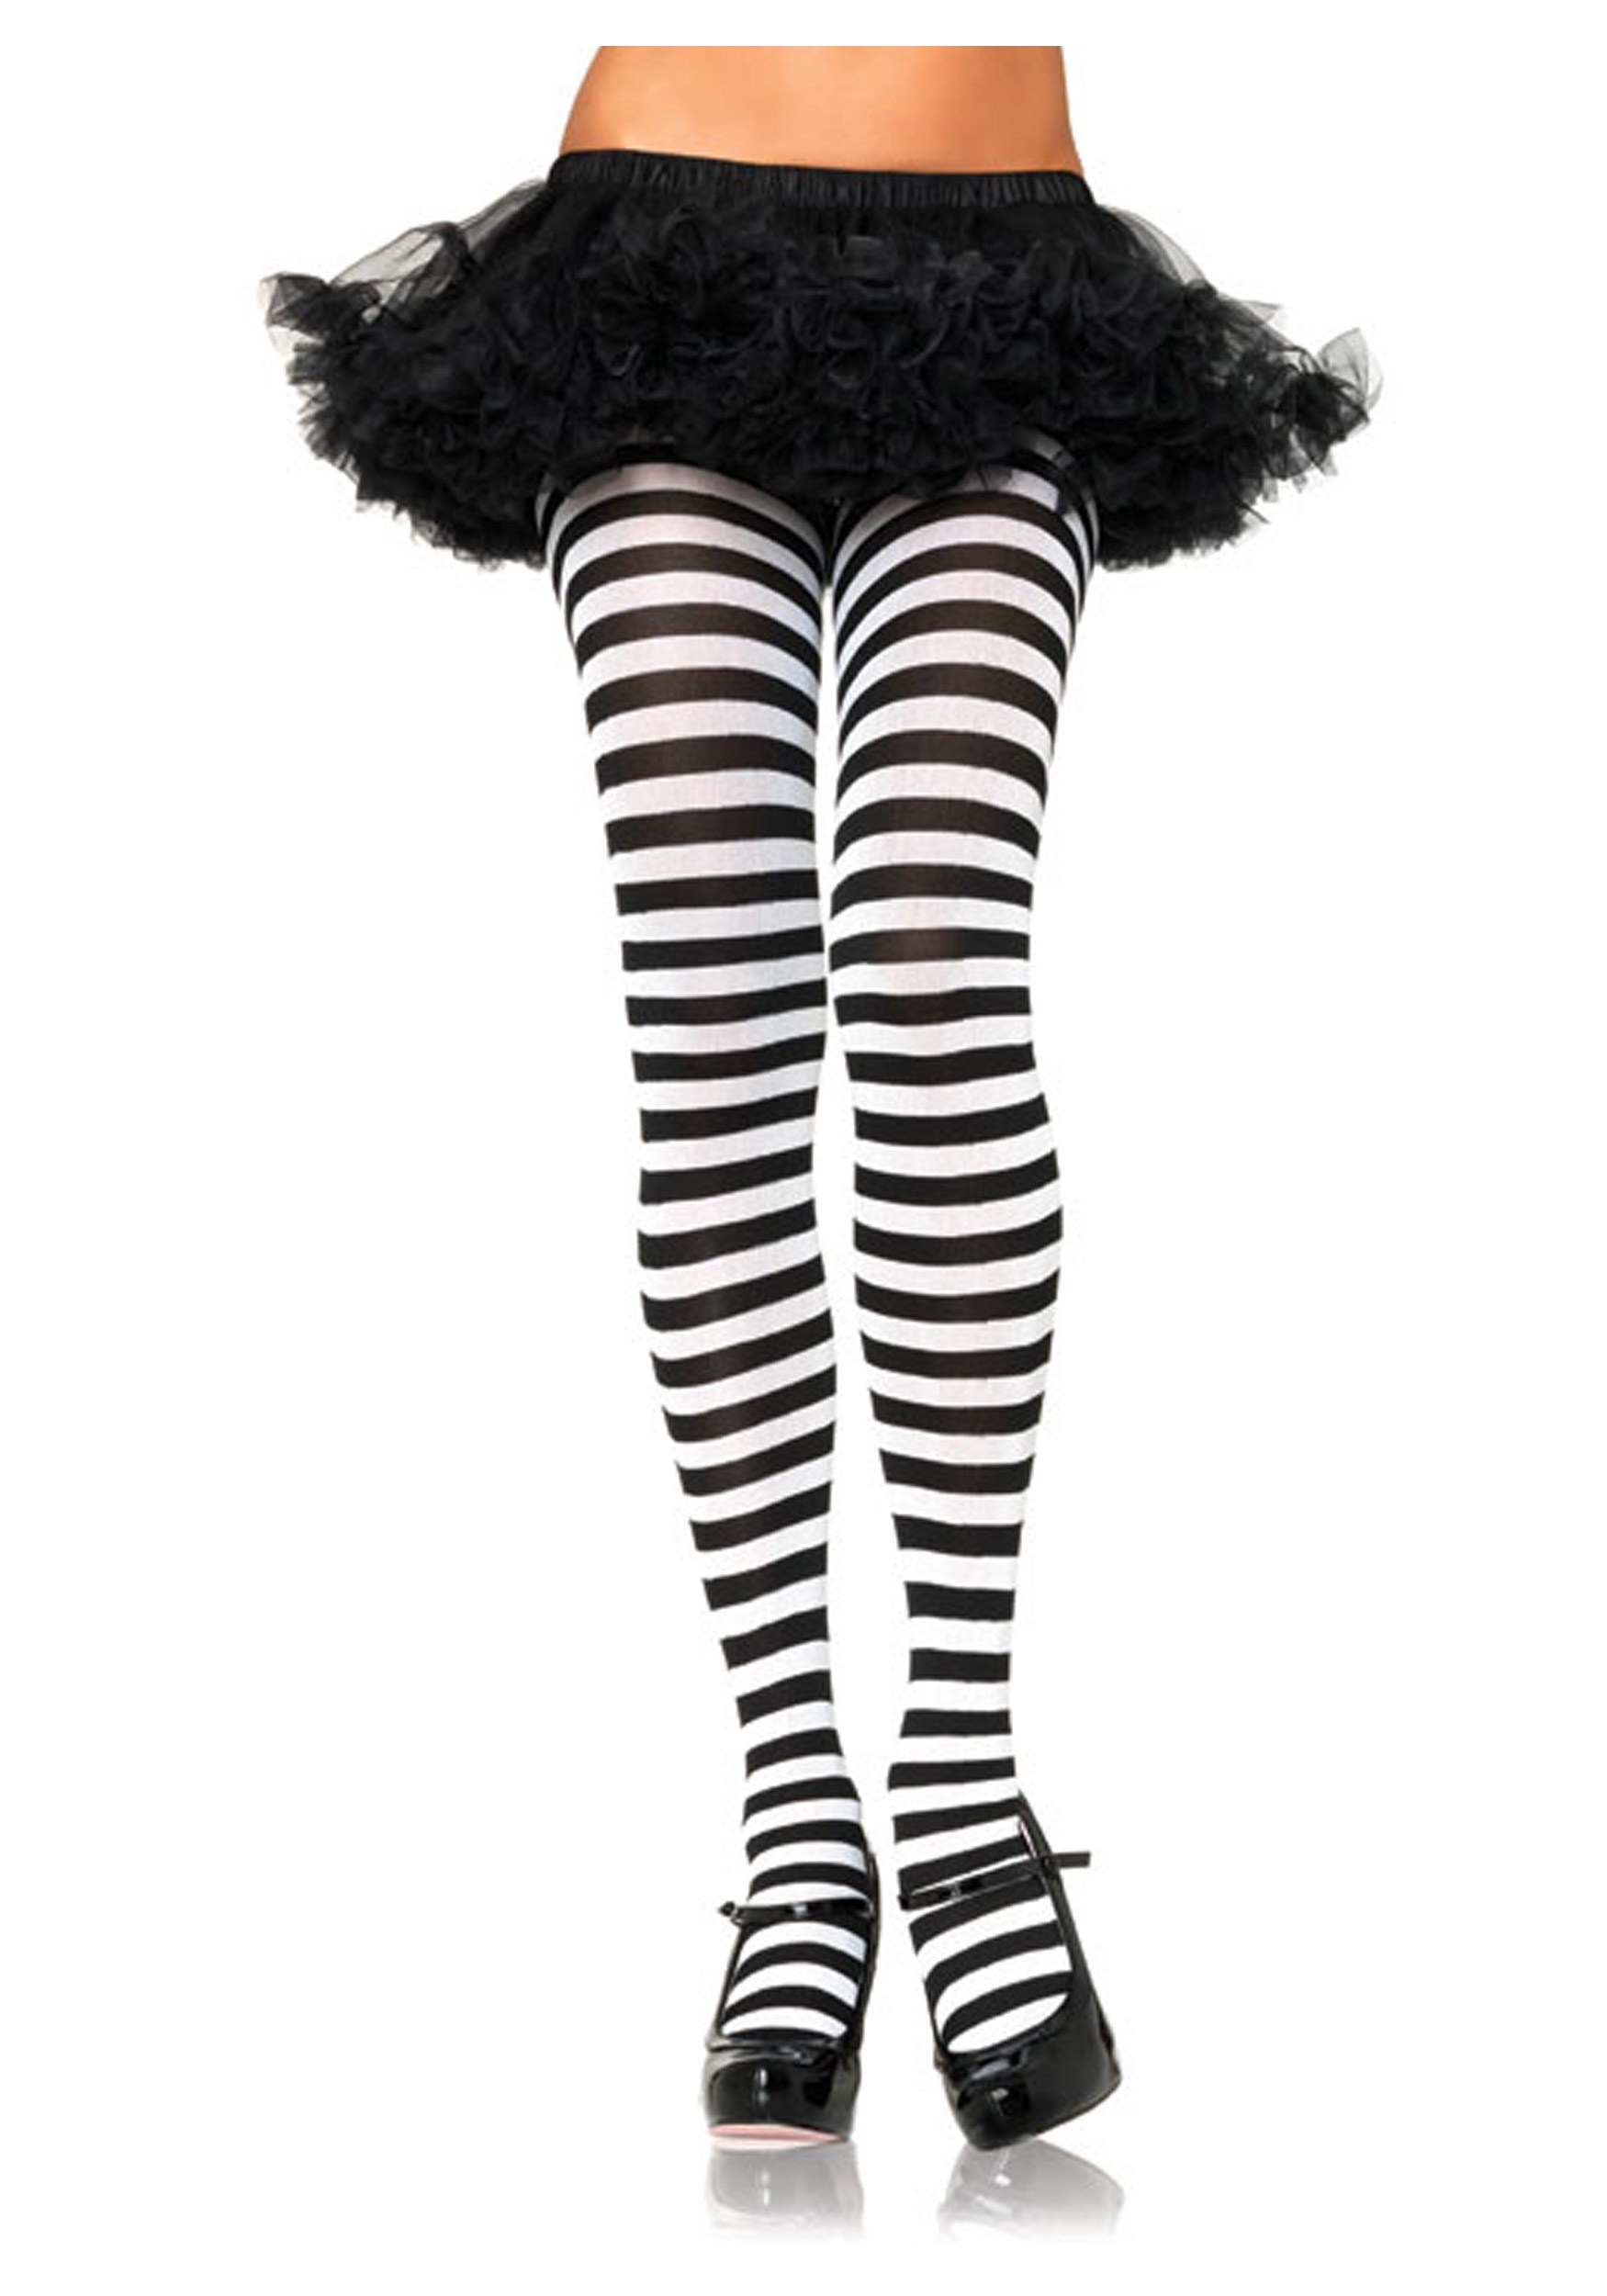 Plus Size Black / White Striped Tights